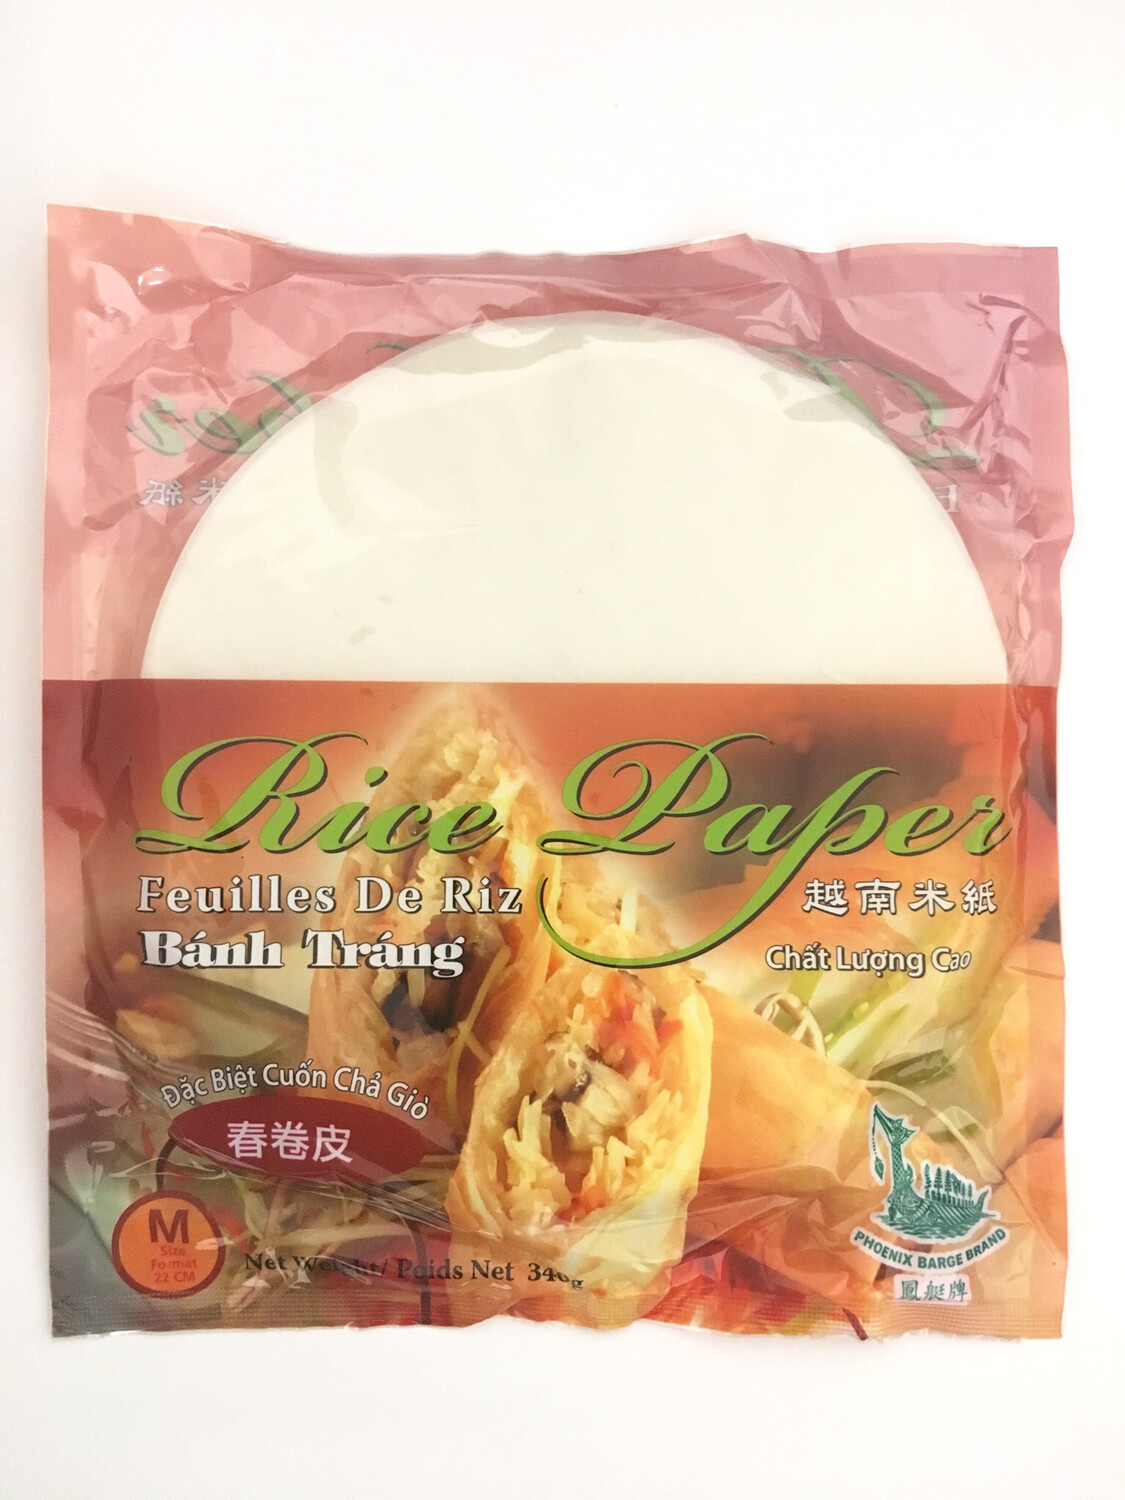 PHOENIX BARGE BRAND RICE PAPER FOR SPRING ROLL 30X340G